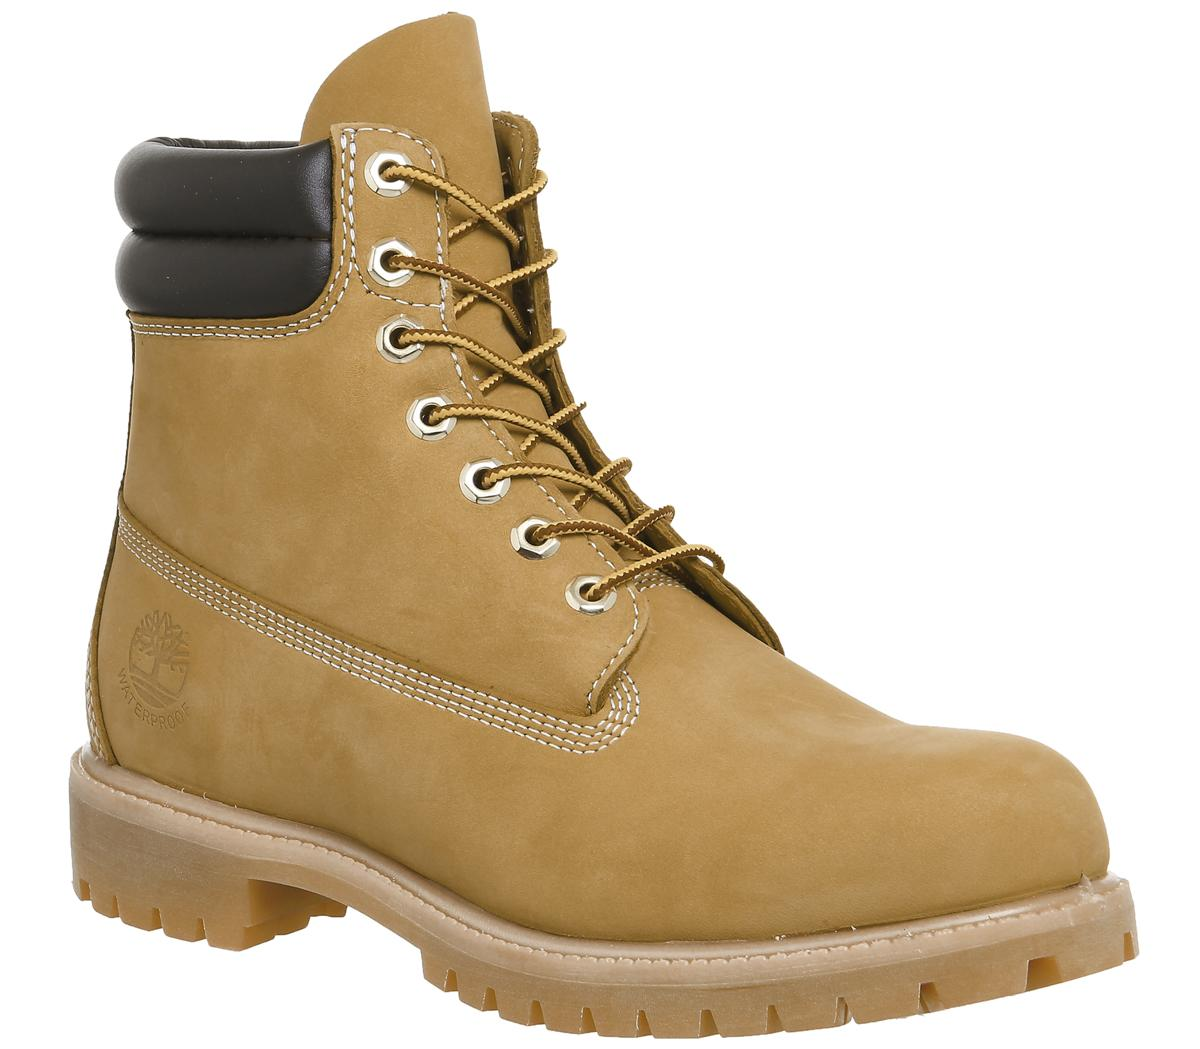 helt ny senaste modet enormt lager Timberland 6 Inch Double Collar Boots Wheat Nubuck - Boots